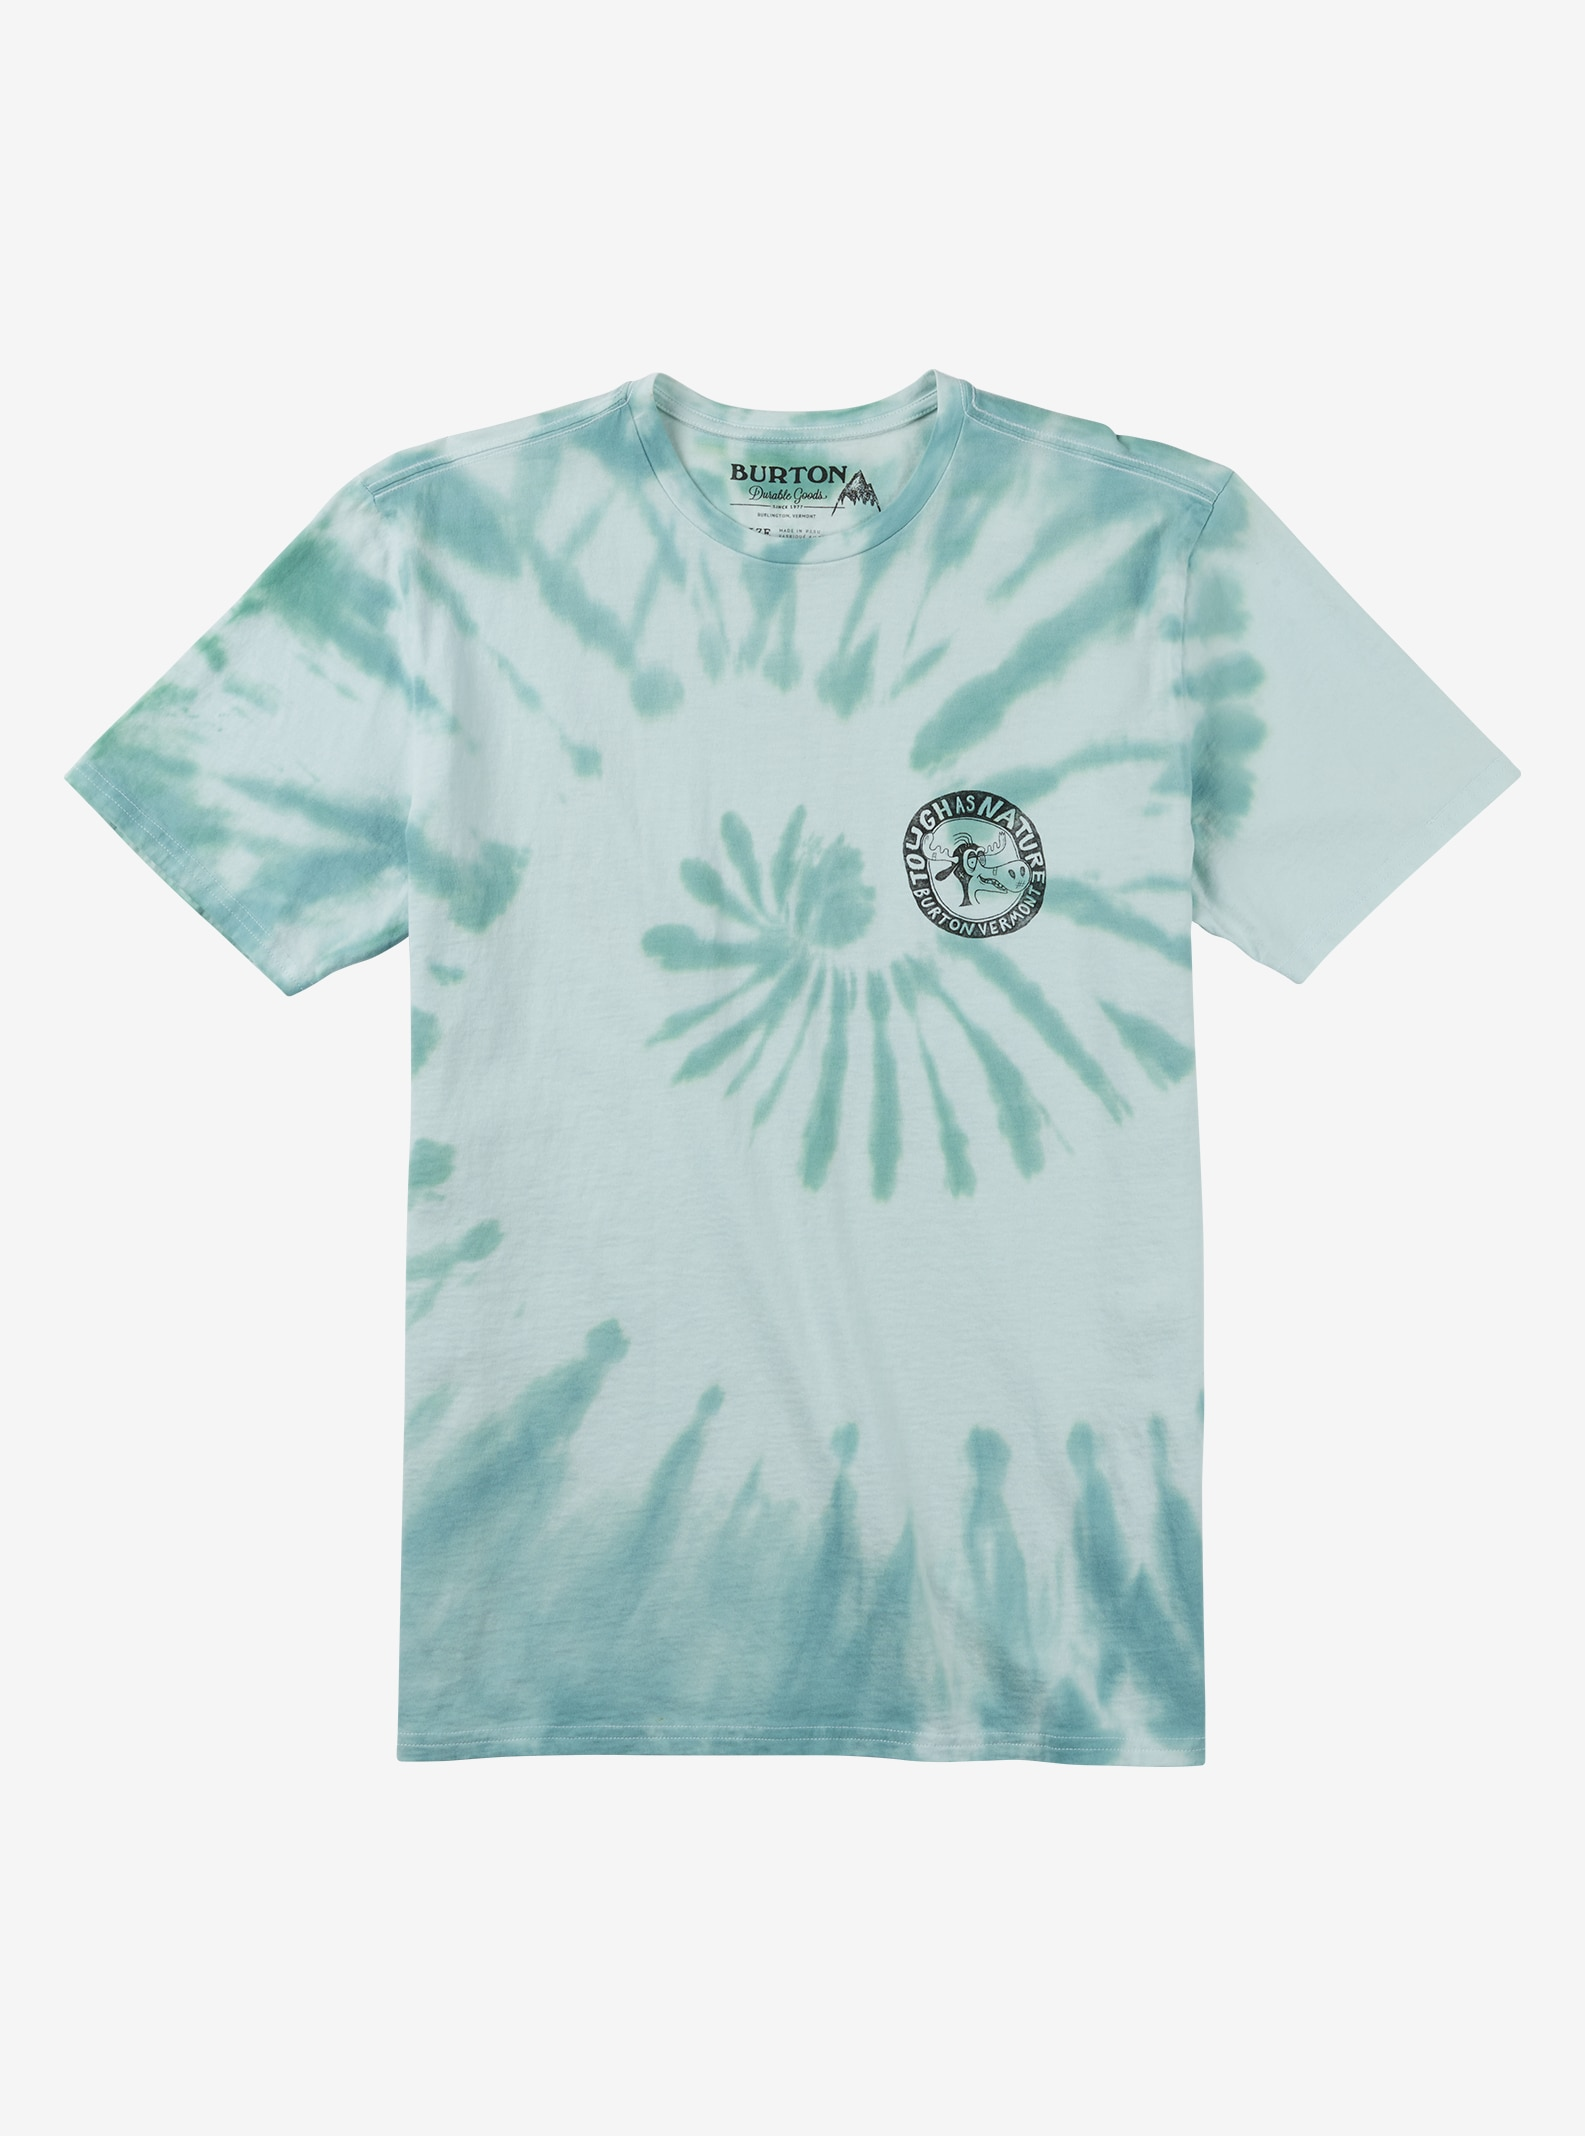 Burton Spiral Dye Short Sleeve T Shirt shown in Tough as Nature Tie Dye